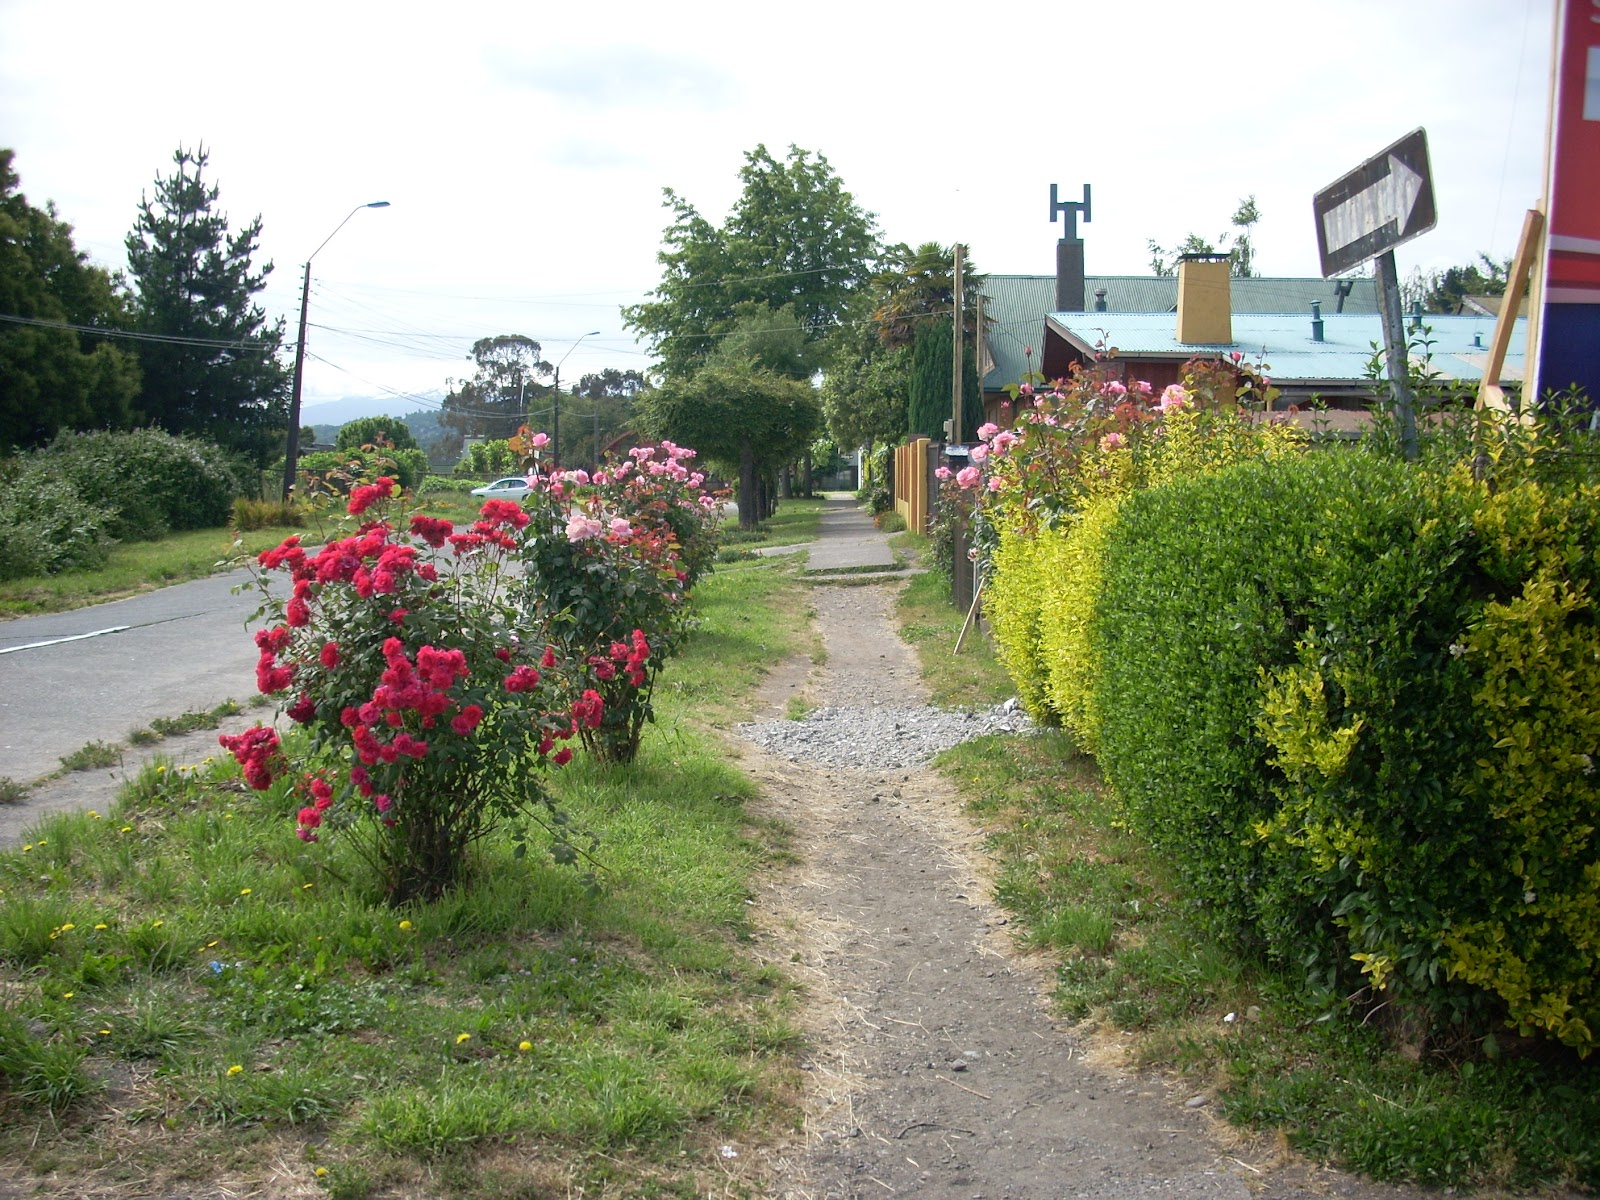 Note the gravel footpath - but then the beautiful roses planted by the owner, who had many more on their property.